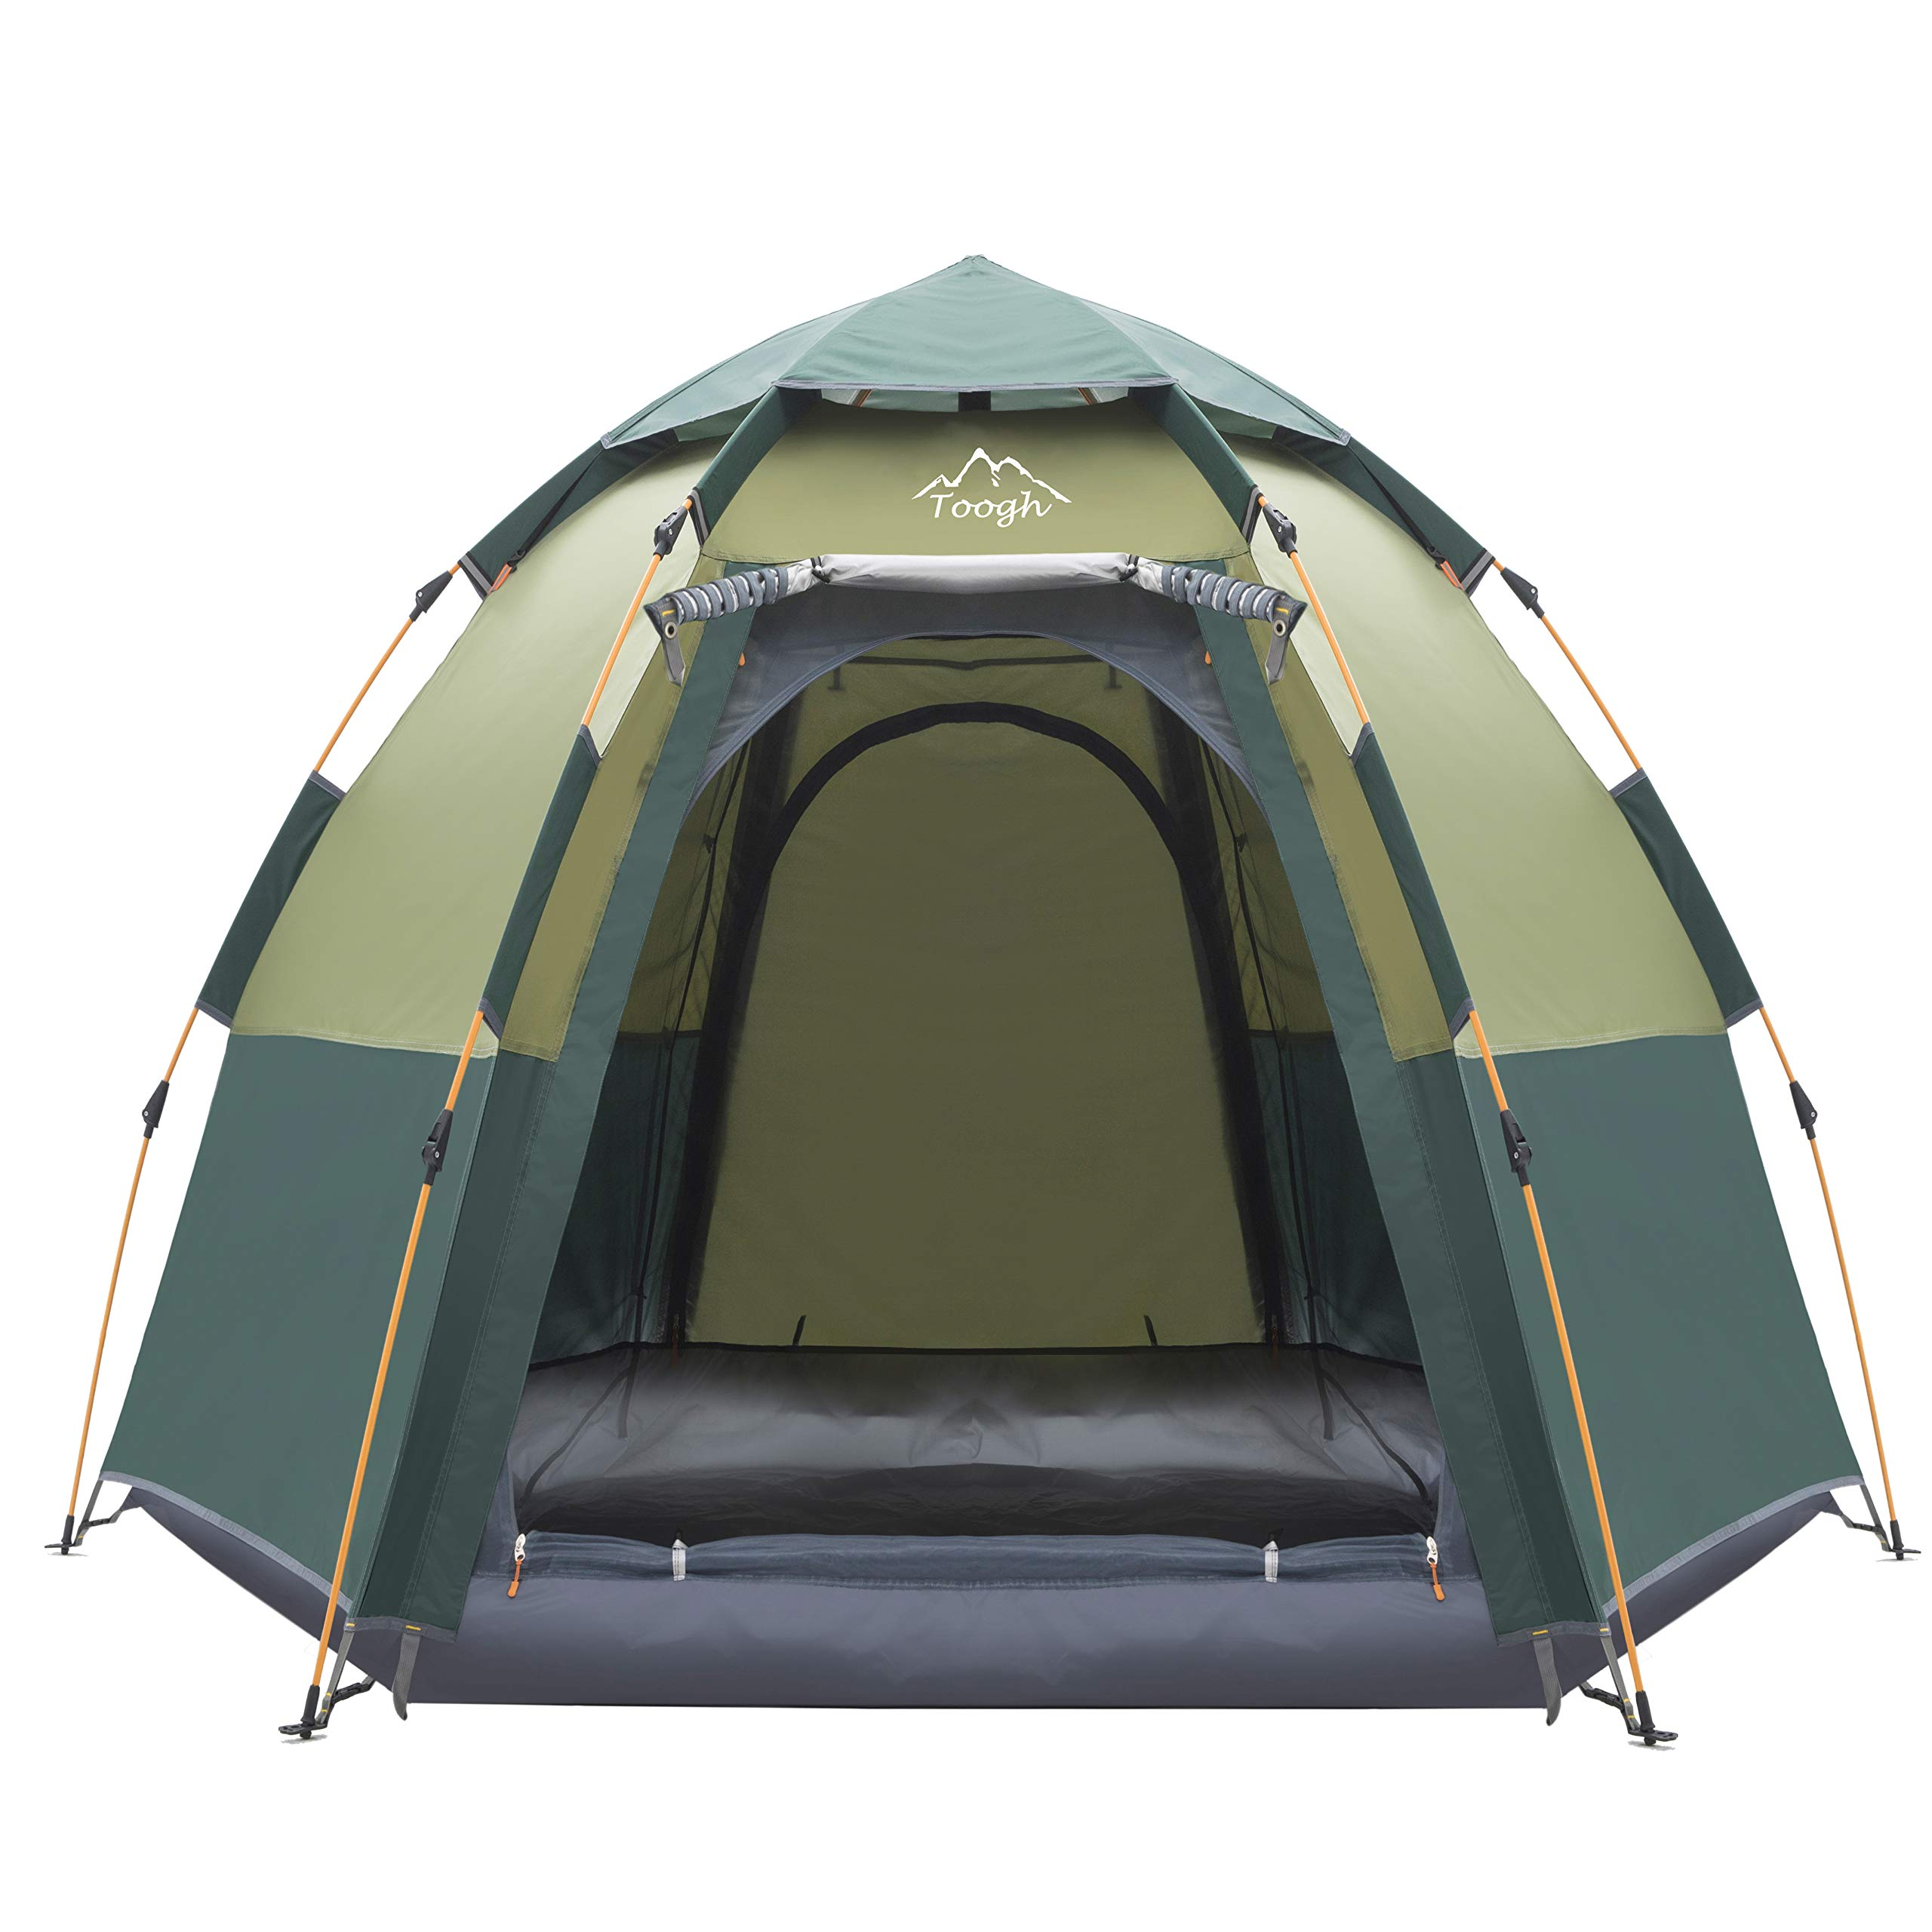 Toogh 3-4 Person Camping Tent Backpacking Tents Hexagon Waterproof Dome Automatic Pop-Up Outdoor Sports Tent Camping Sun Shelters by Toogh